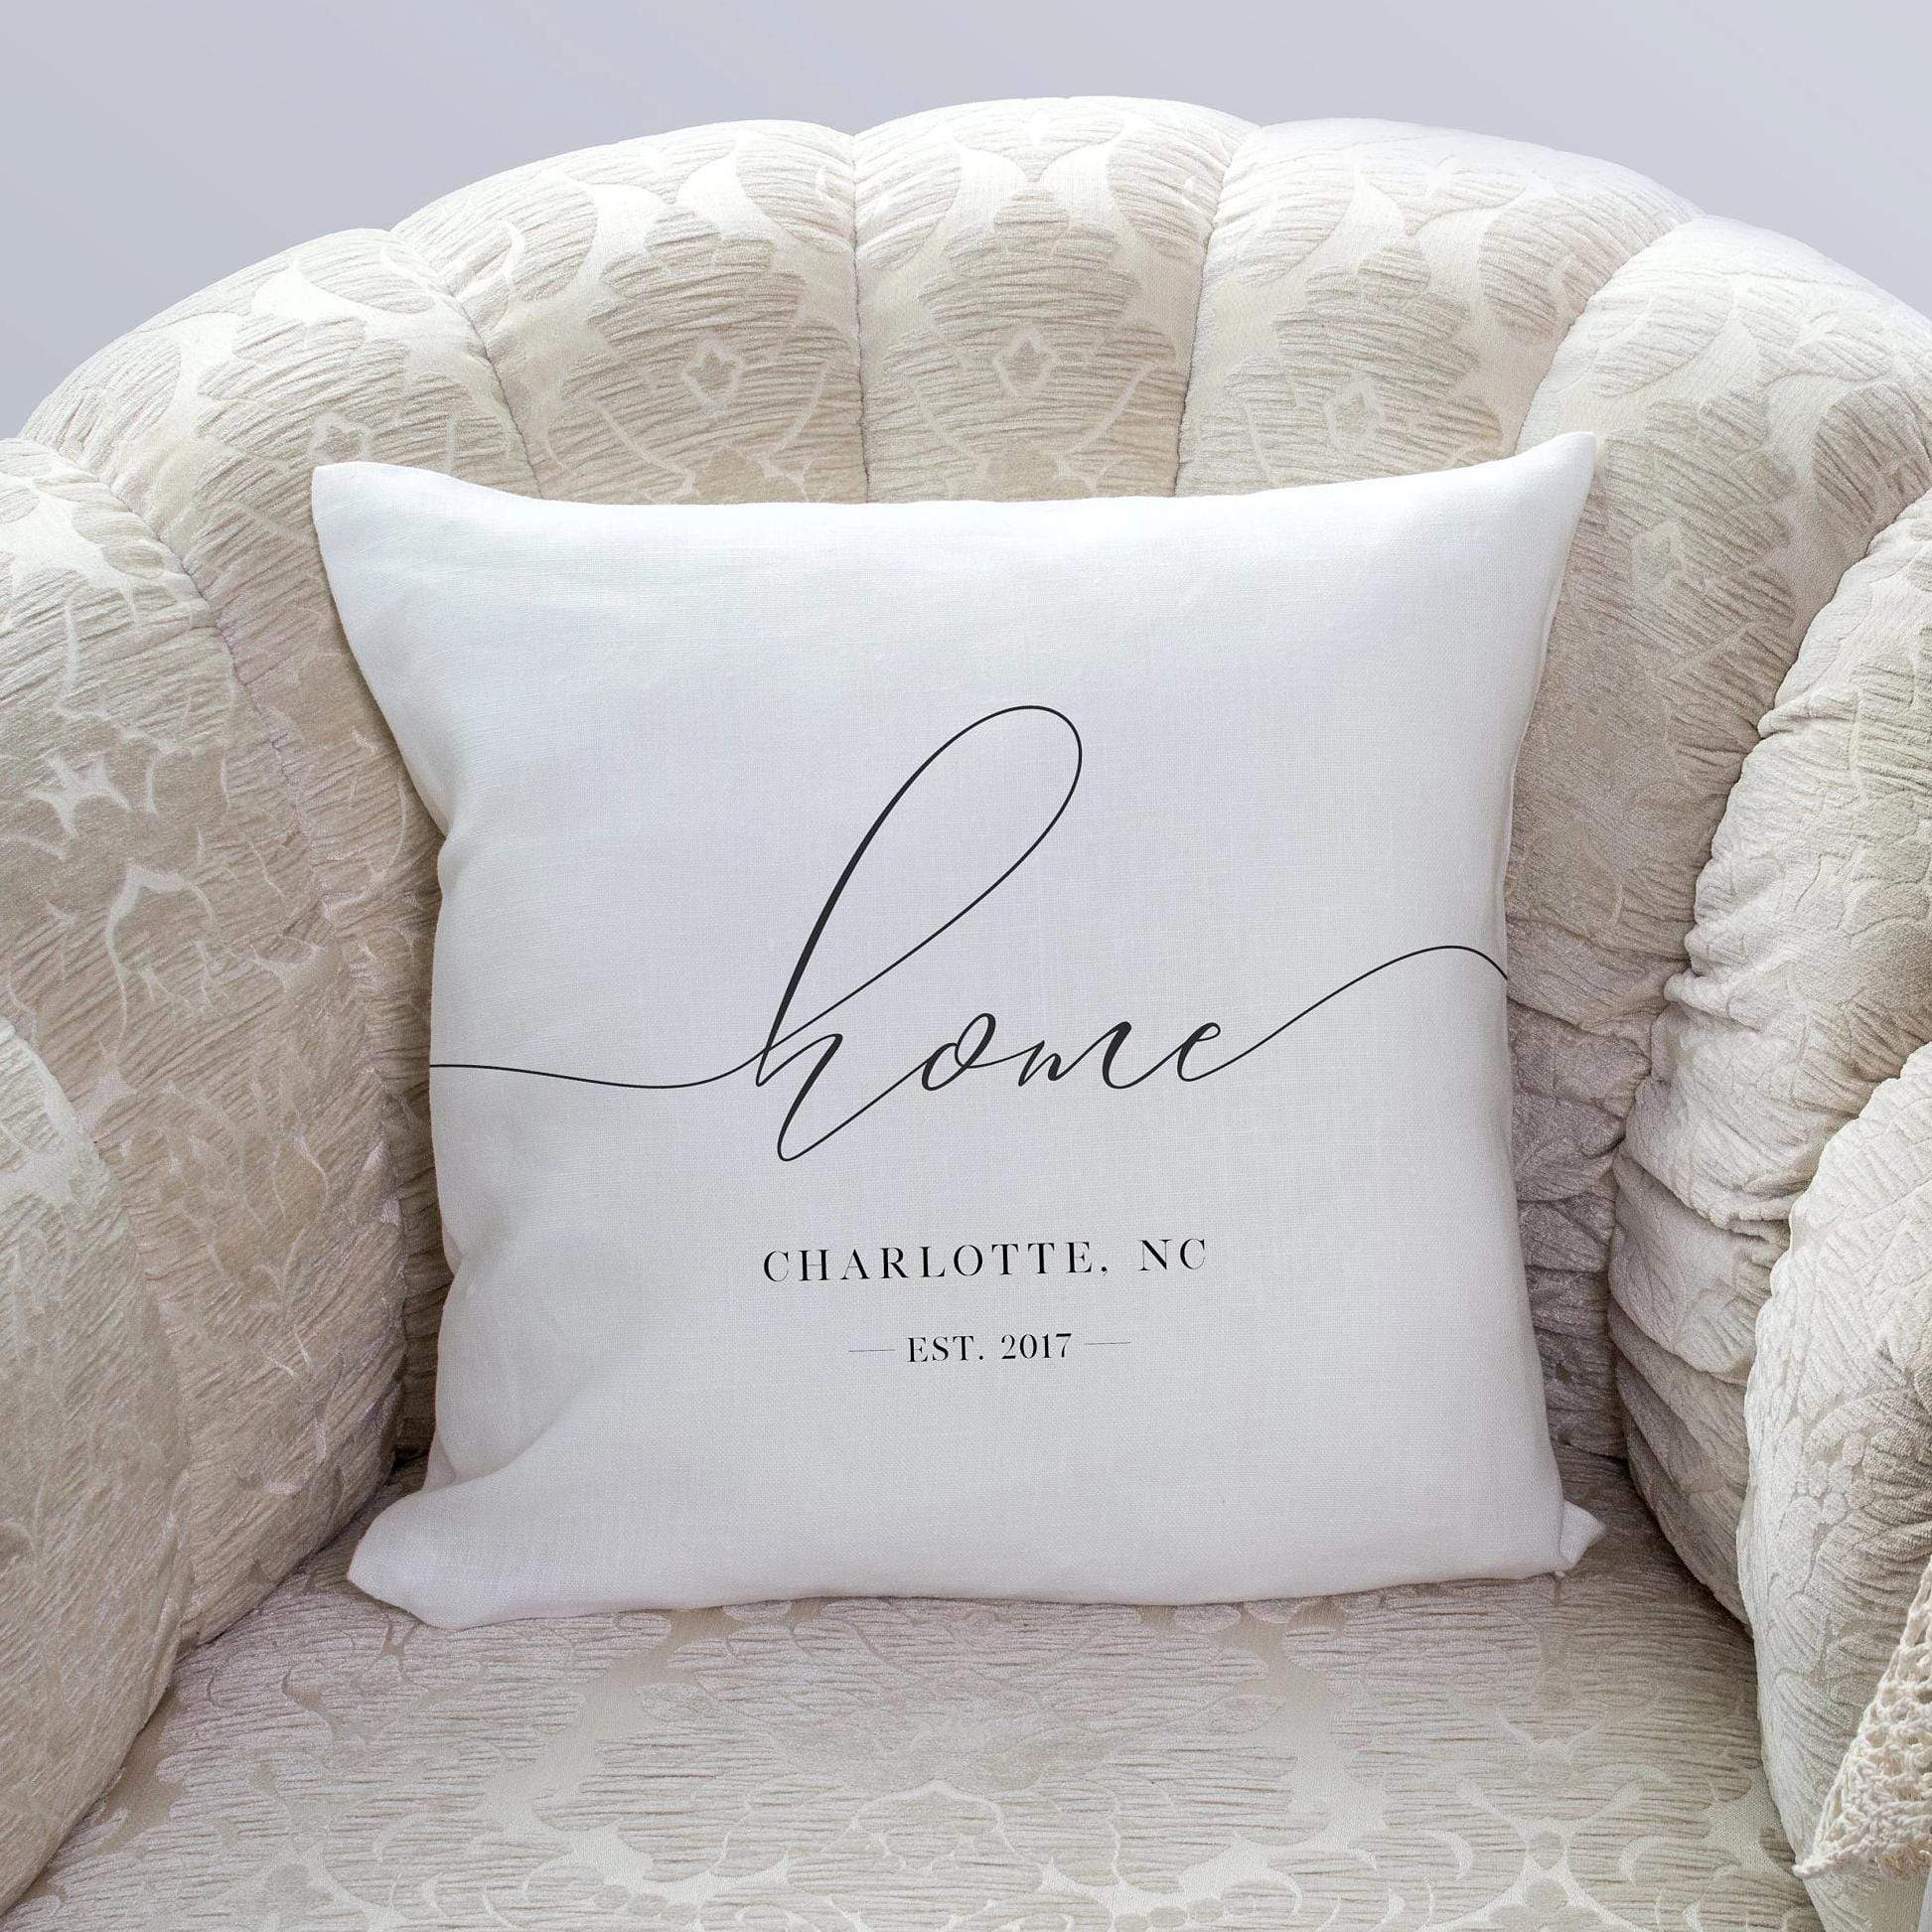 Leanne & Co. Pillow Home Established Decorative Throw Pillow